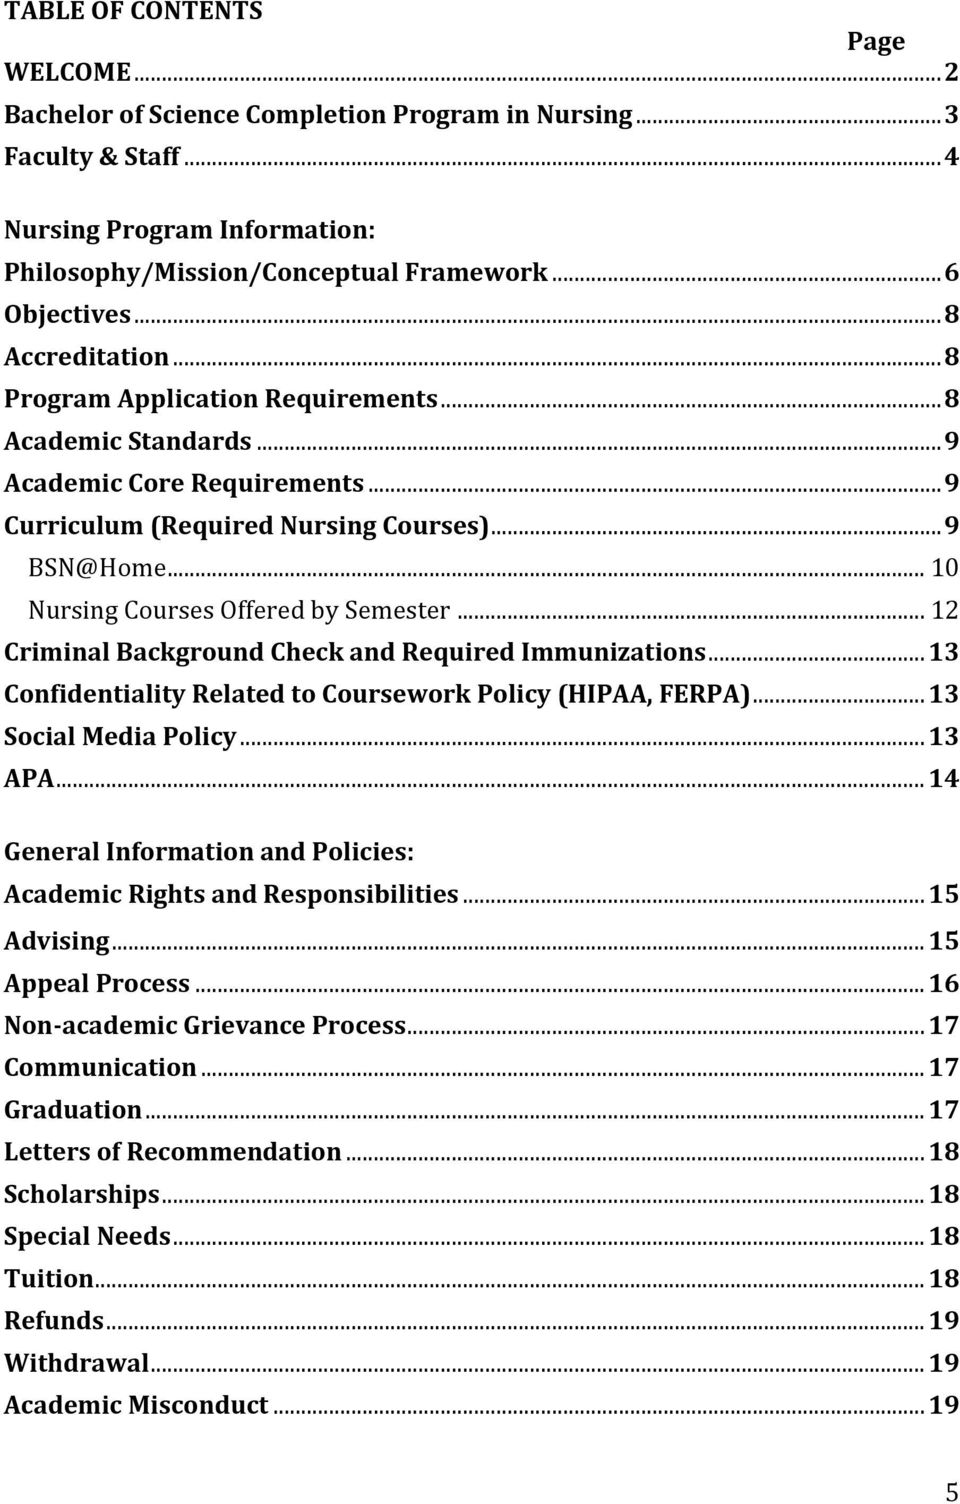 .. 10 Nursing Courses Offered by Semester... 12 Criminal Background Check and Required Immunizations... 13 Confidentiality Related to Coursework Policy (HIPAA, FERPA)... 13 Social Media Policy.